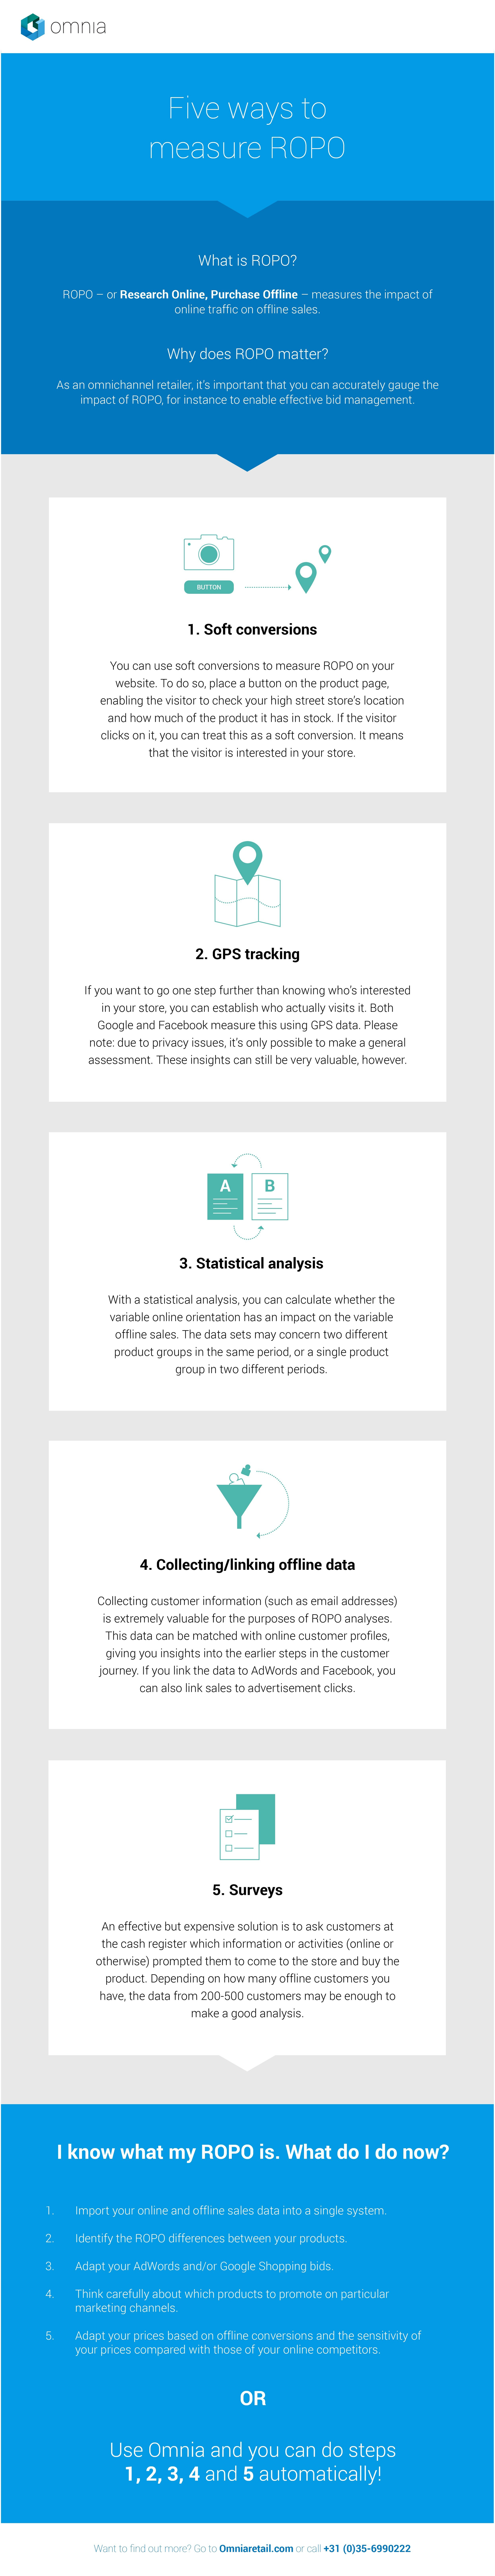 Five ways to measure ROPO : The research online, purchase offline effect